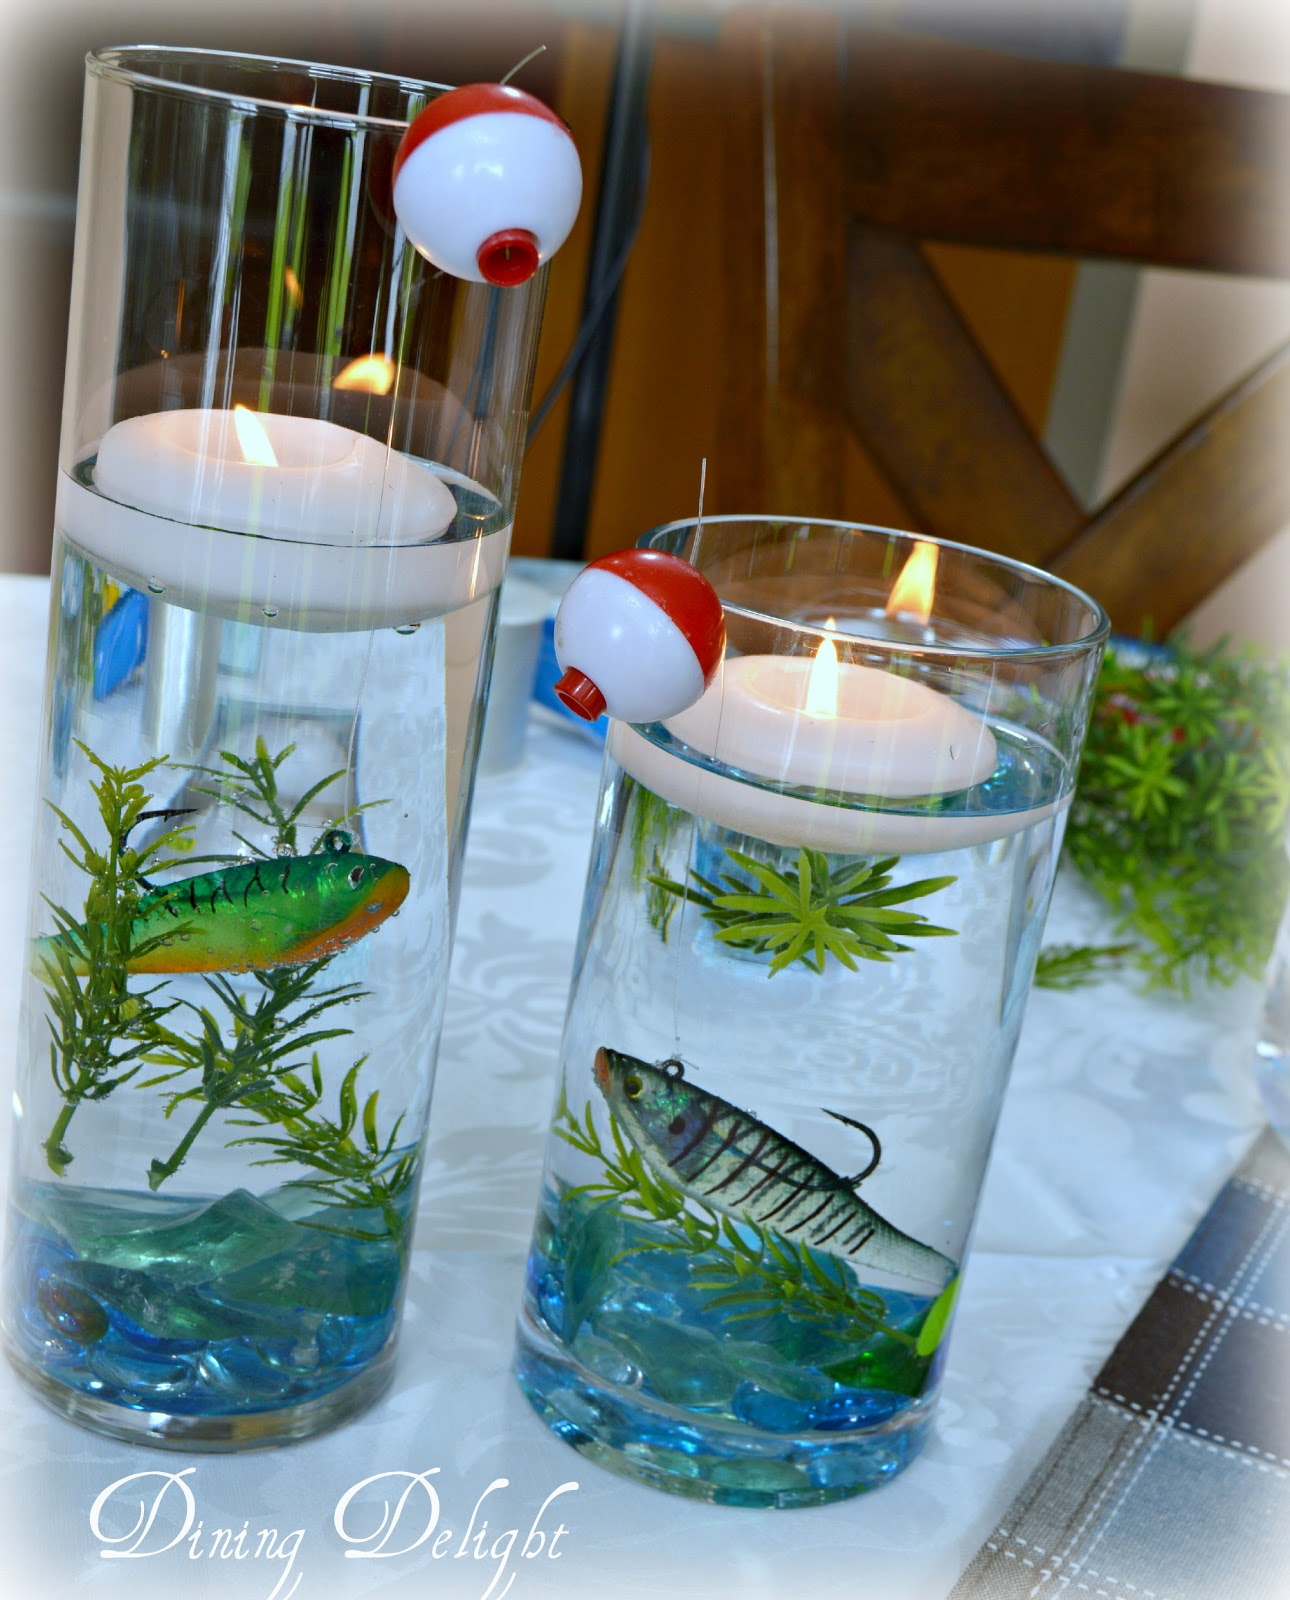 Dining delight fishing centerpiece in cylinder vase